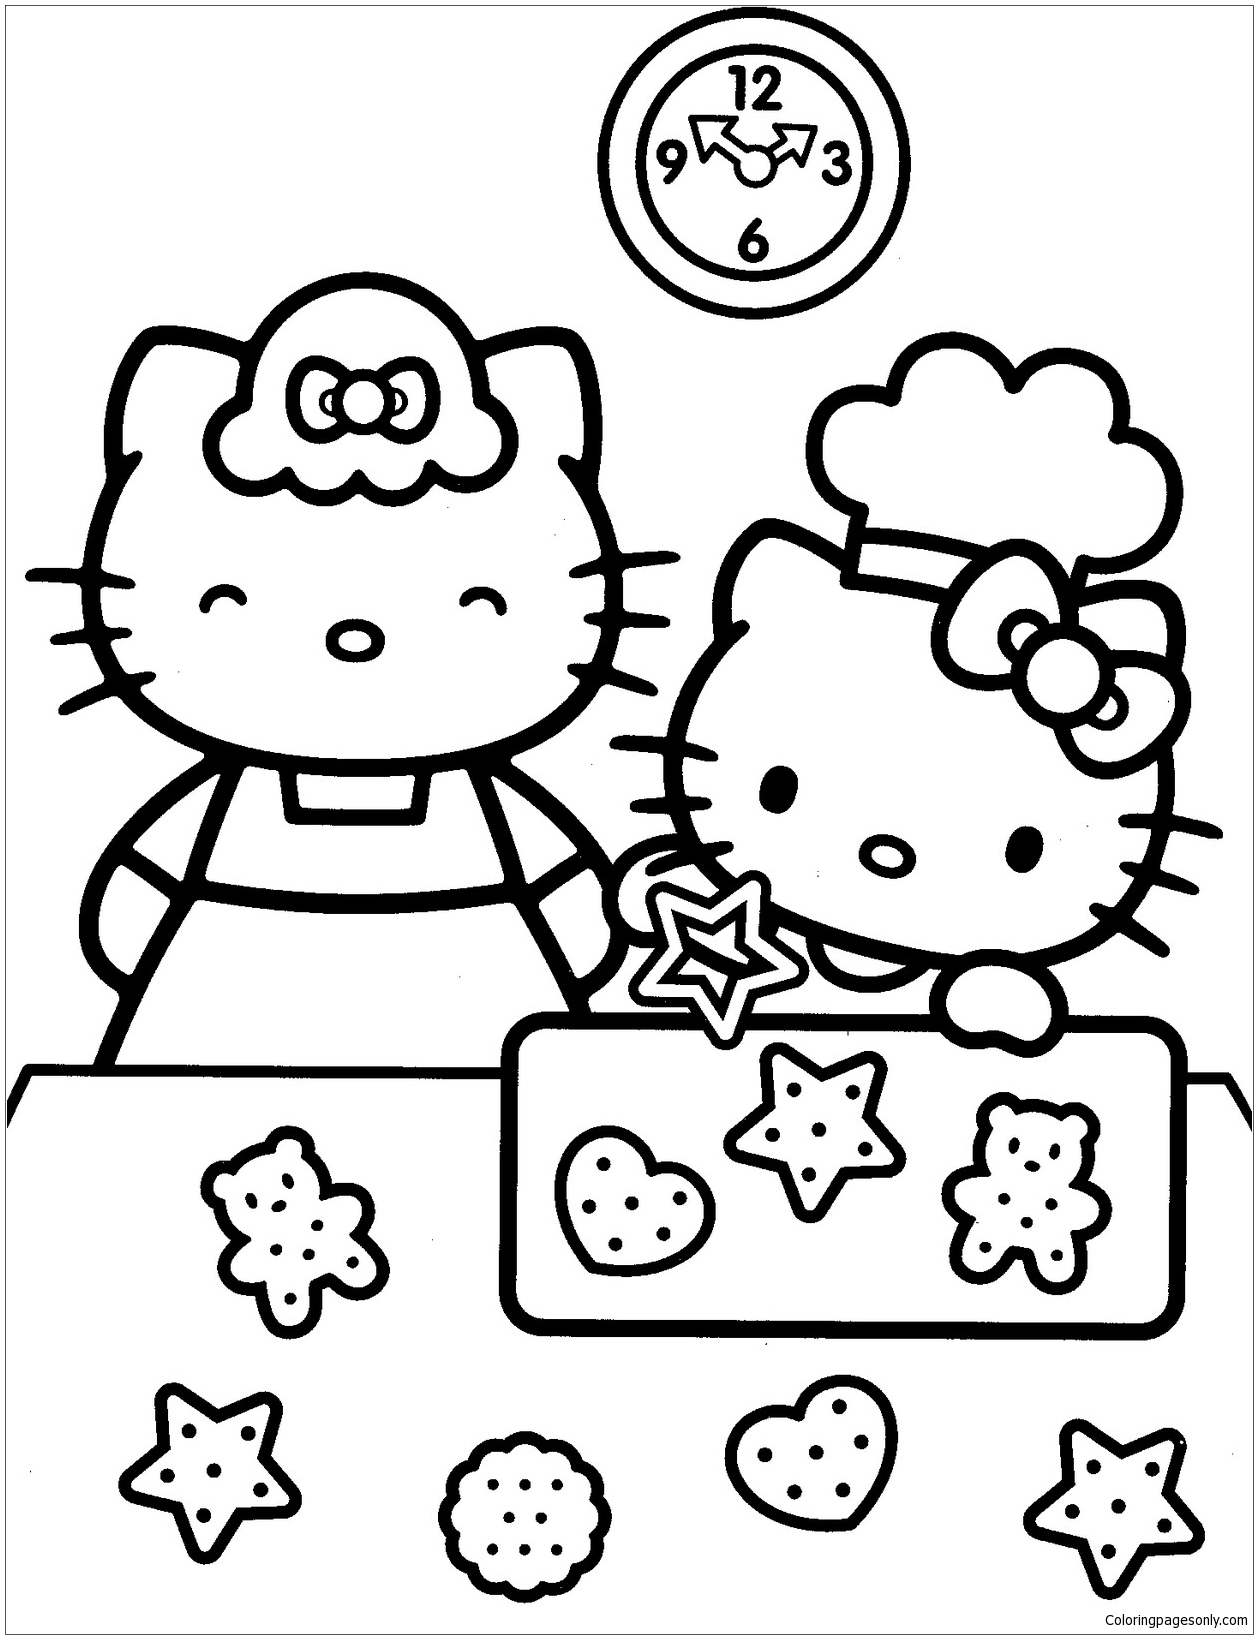 hello kitty family coloring pages hello kitty family coloring pages divyajananiorg pages hello family coloring kitty